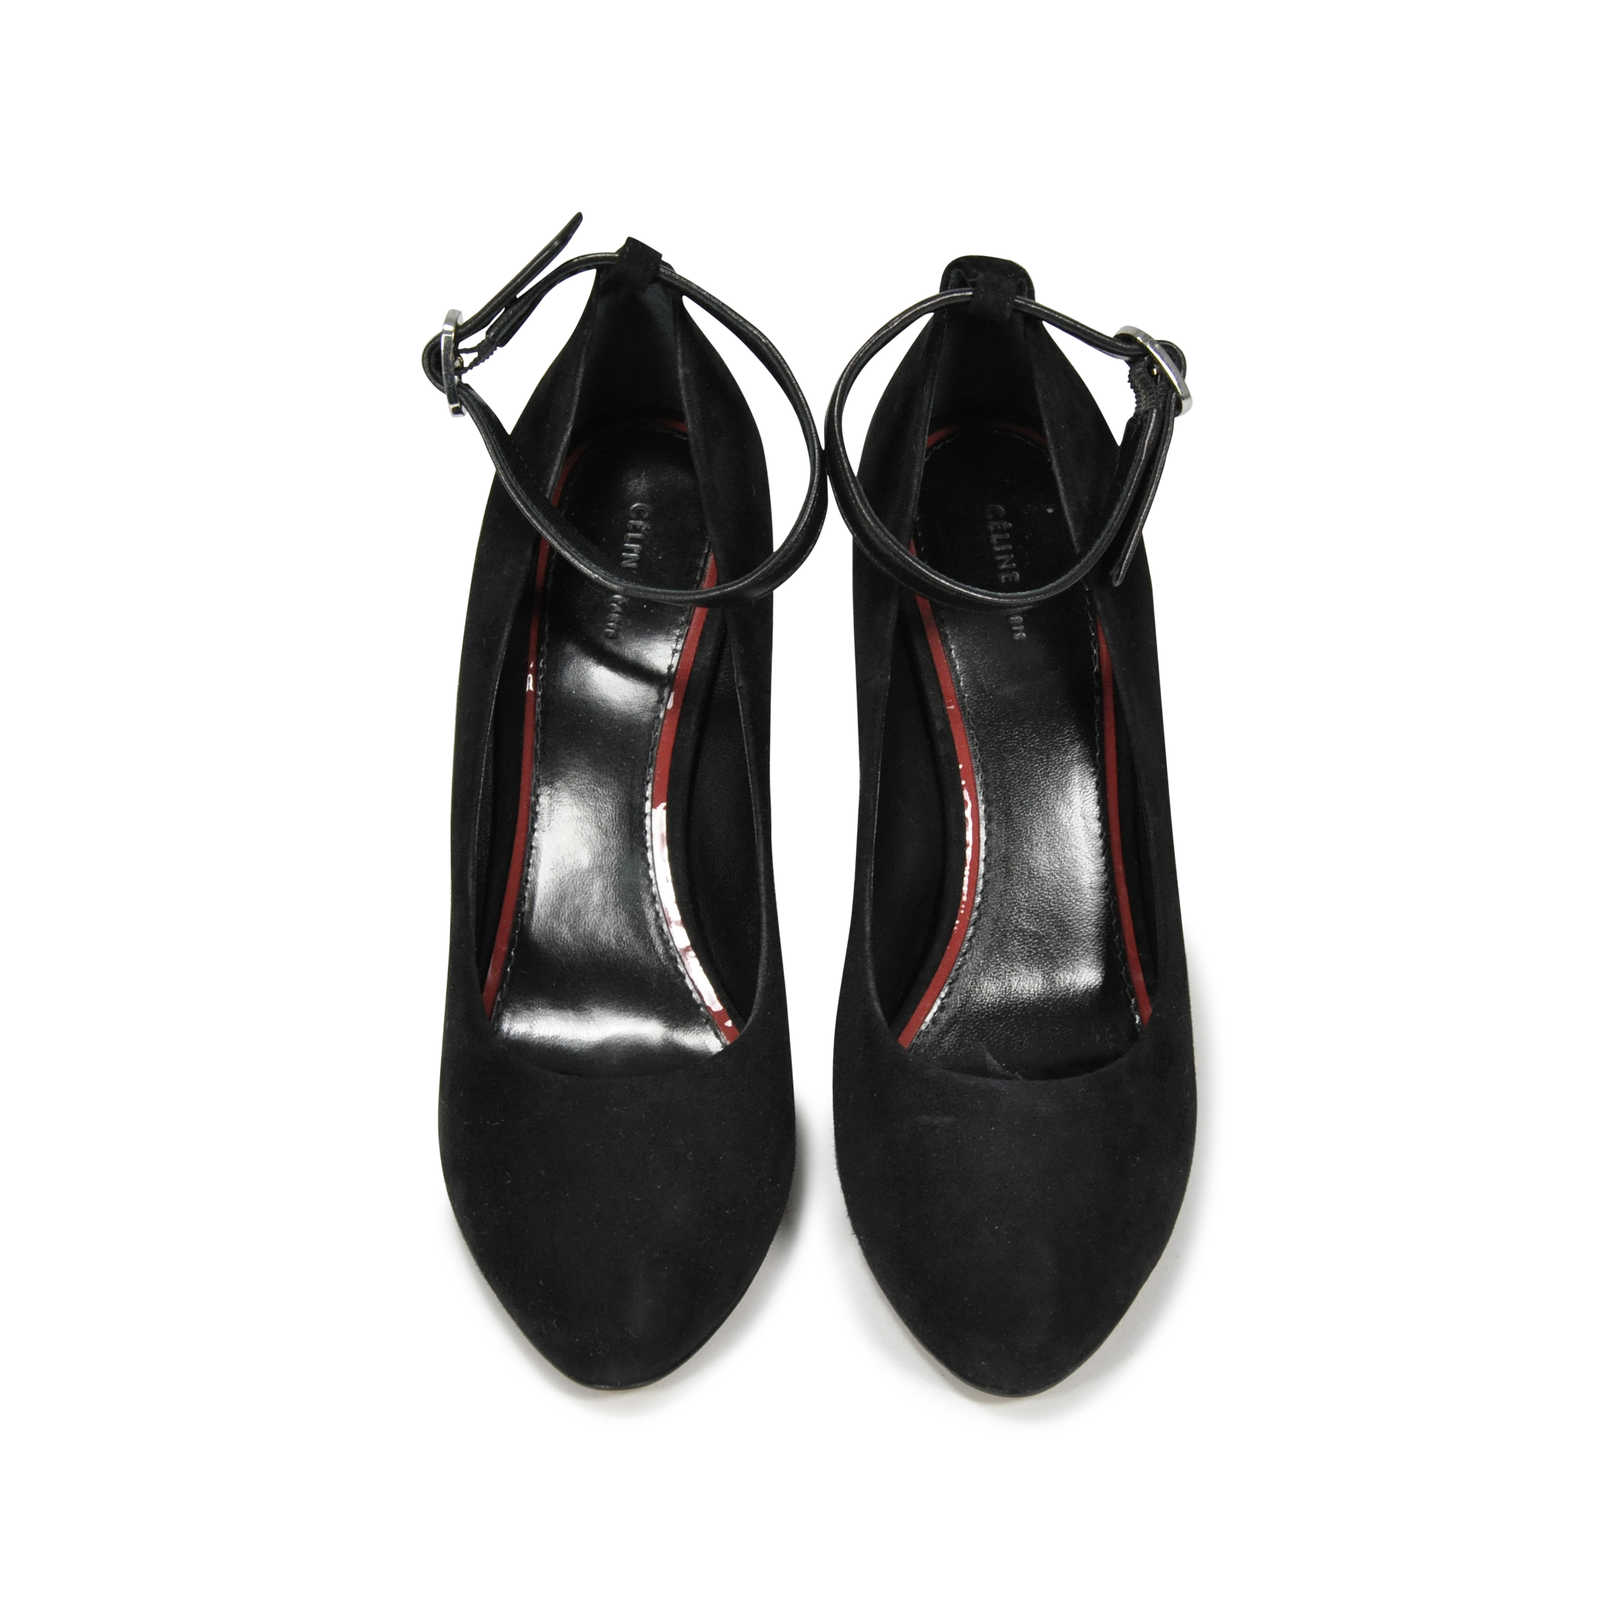 Authentic Pre Owned Cline Colourblock Wedge Pumps Pss 214 00006 Mary Janes Straps Circle Block Pointed Toe Wedges Shoes Black Thumbnail